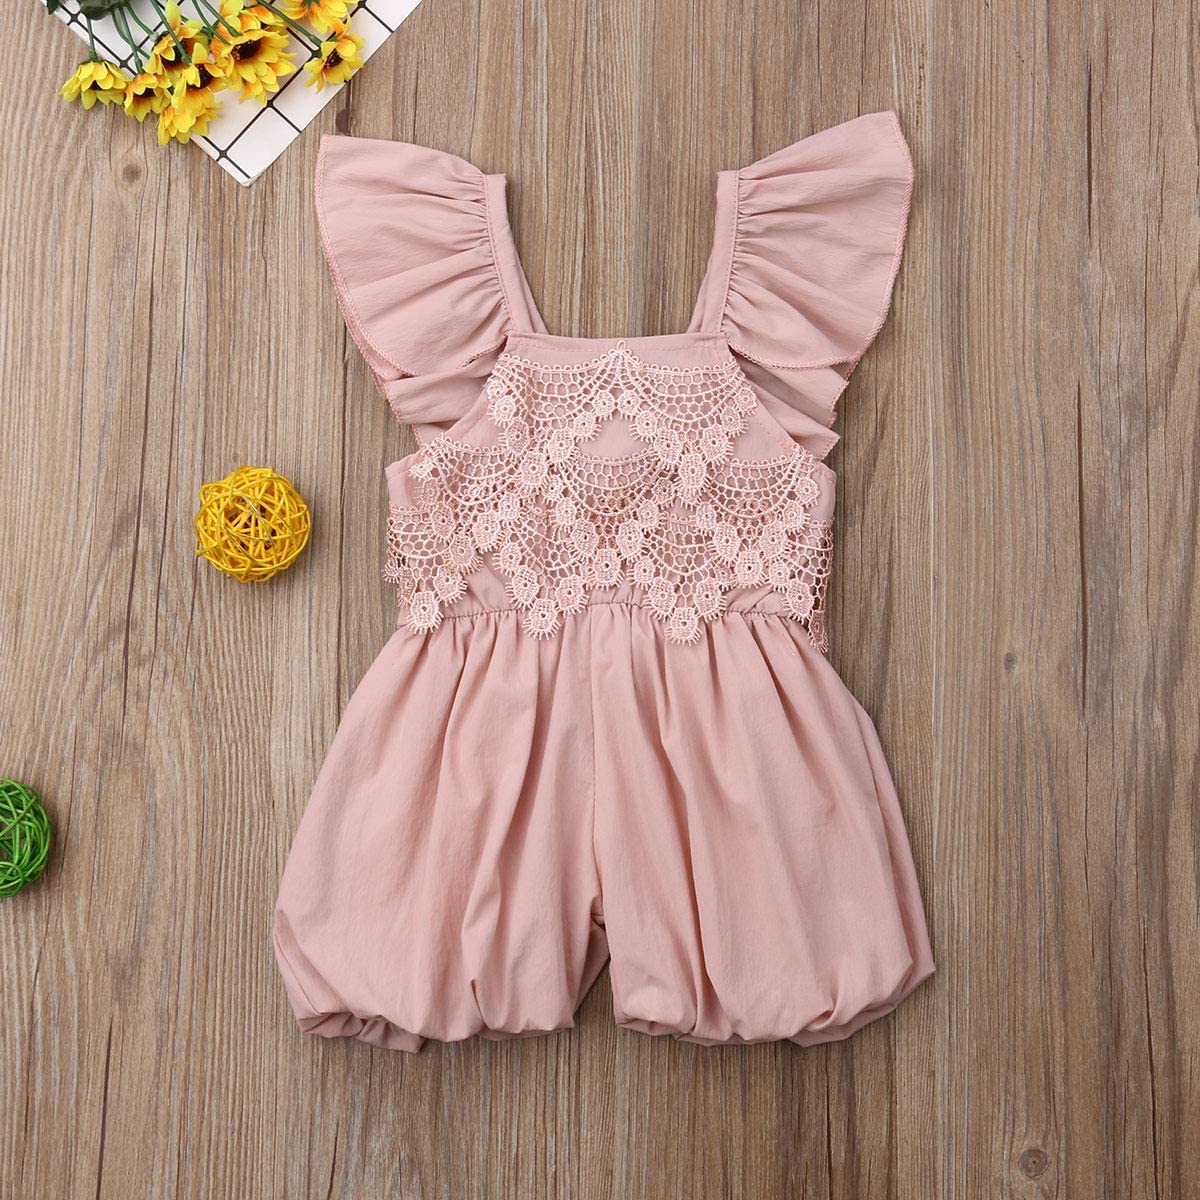 Mubineo Little Toddler Girl Ruffle Sleeveless Wide Leg Cotton Romper Jumpsuit Outfit Clothes